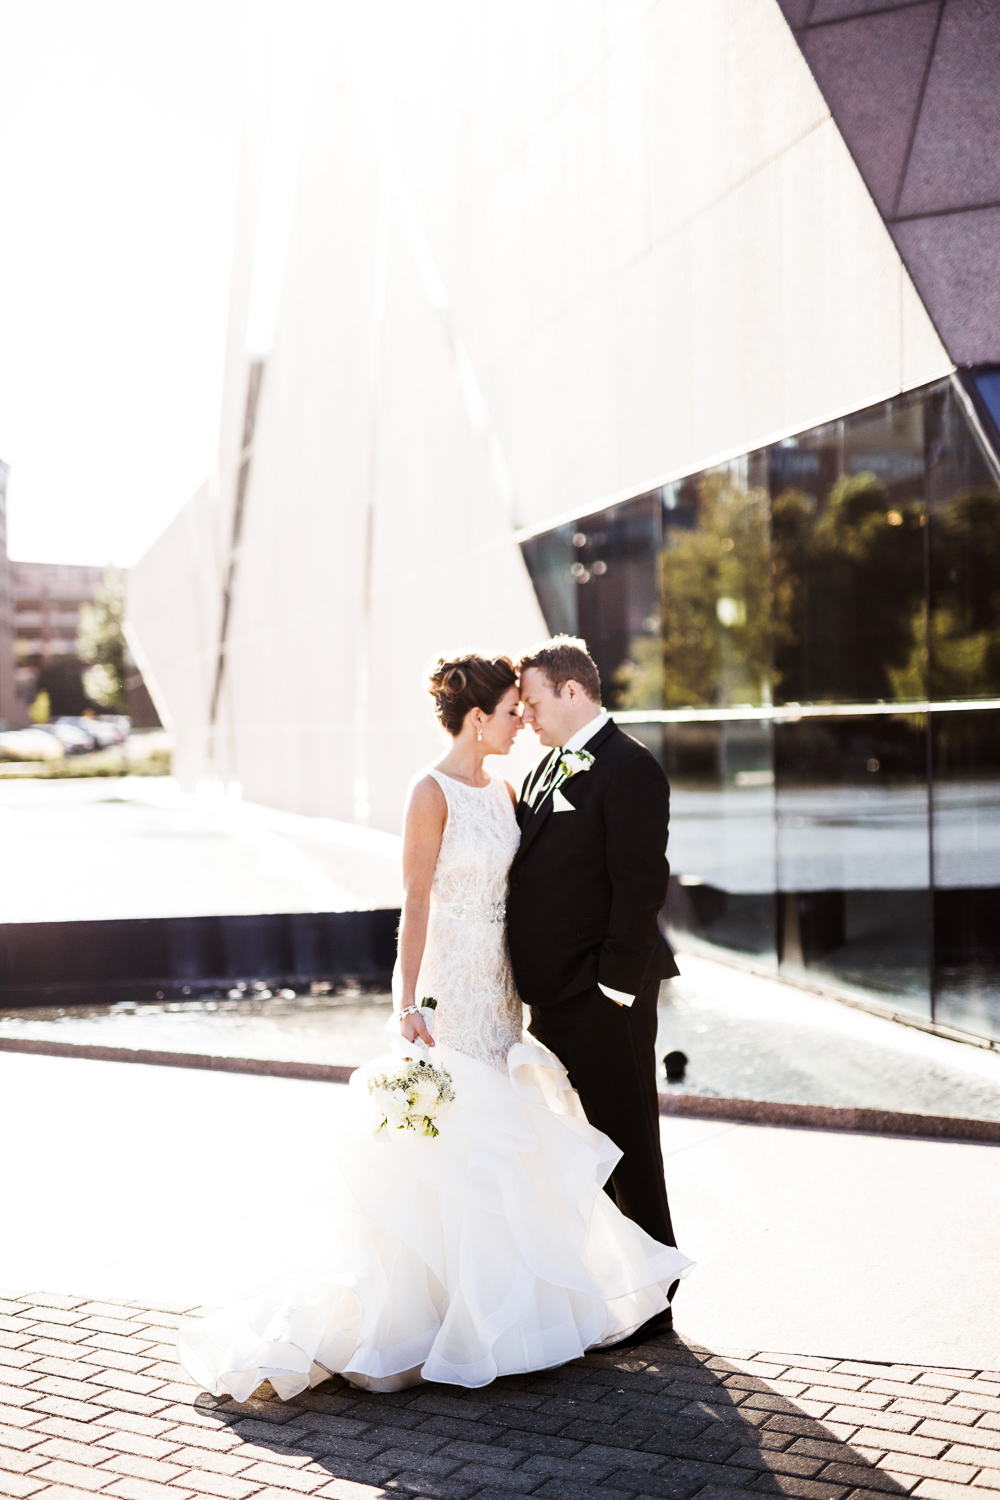 clewell minneapolis wedding photographer-292342382202120340.jpg